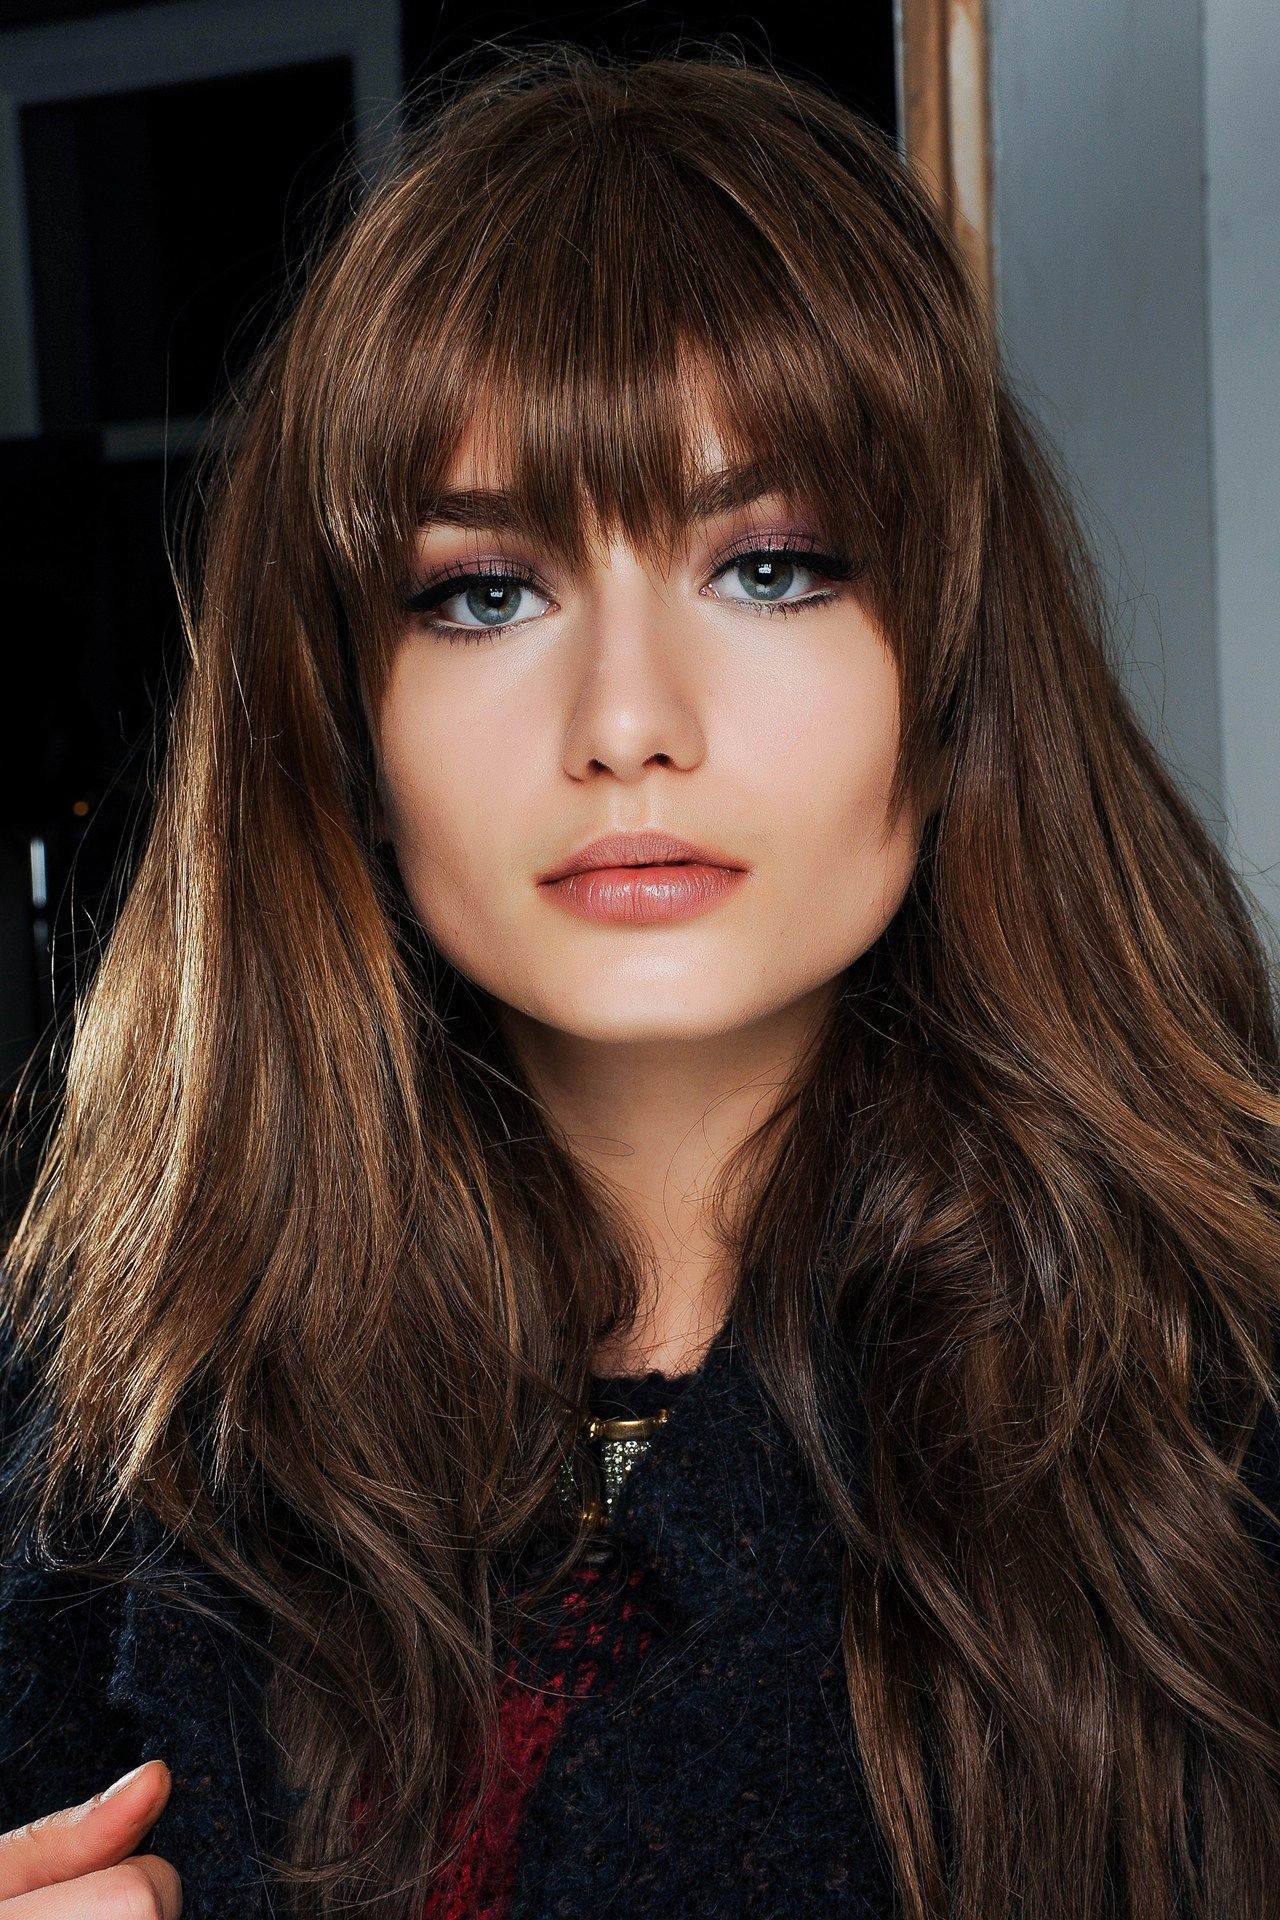 Pin On Aw 2013 14 Hair Trends